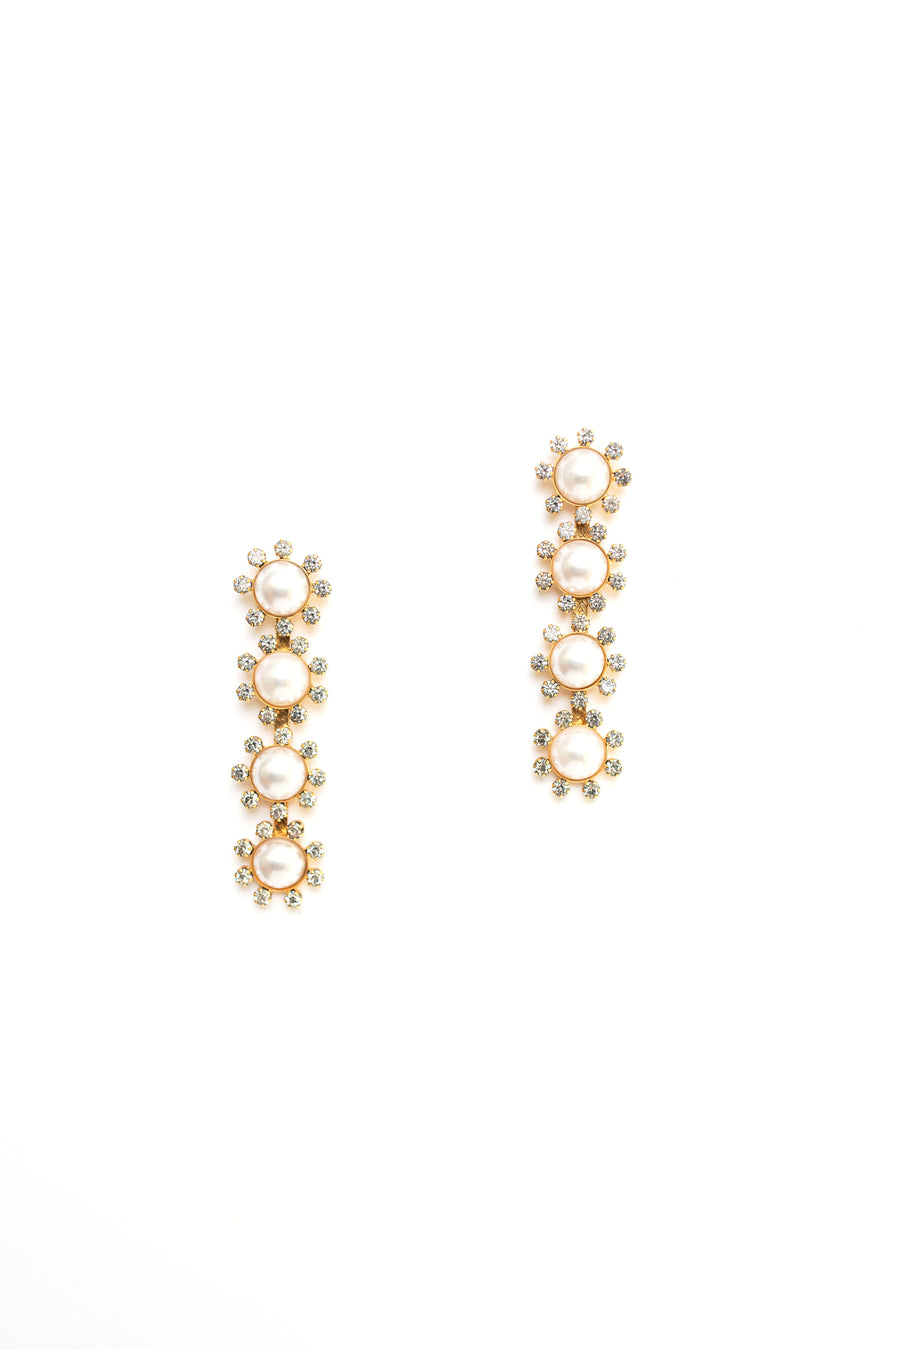 Tenney Earrings